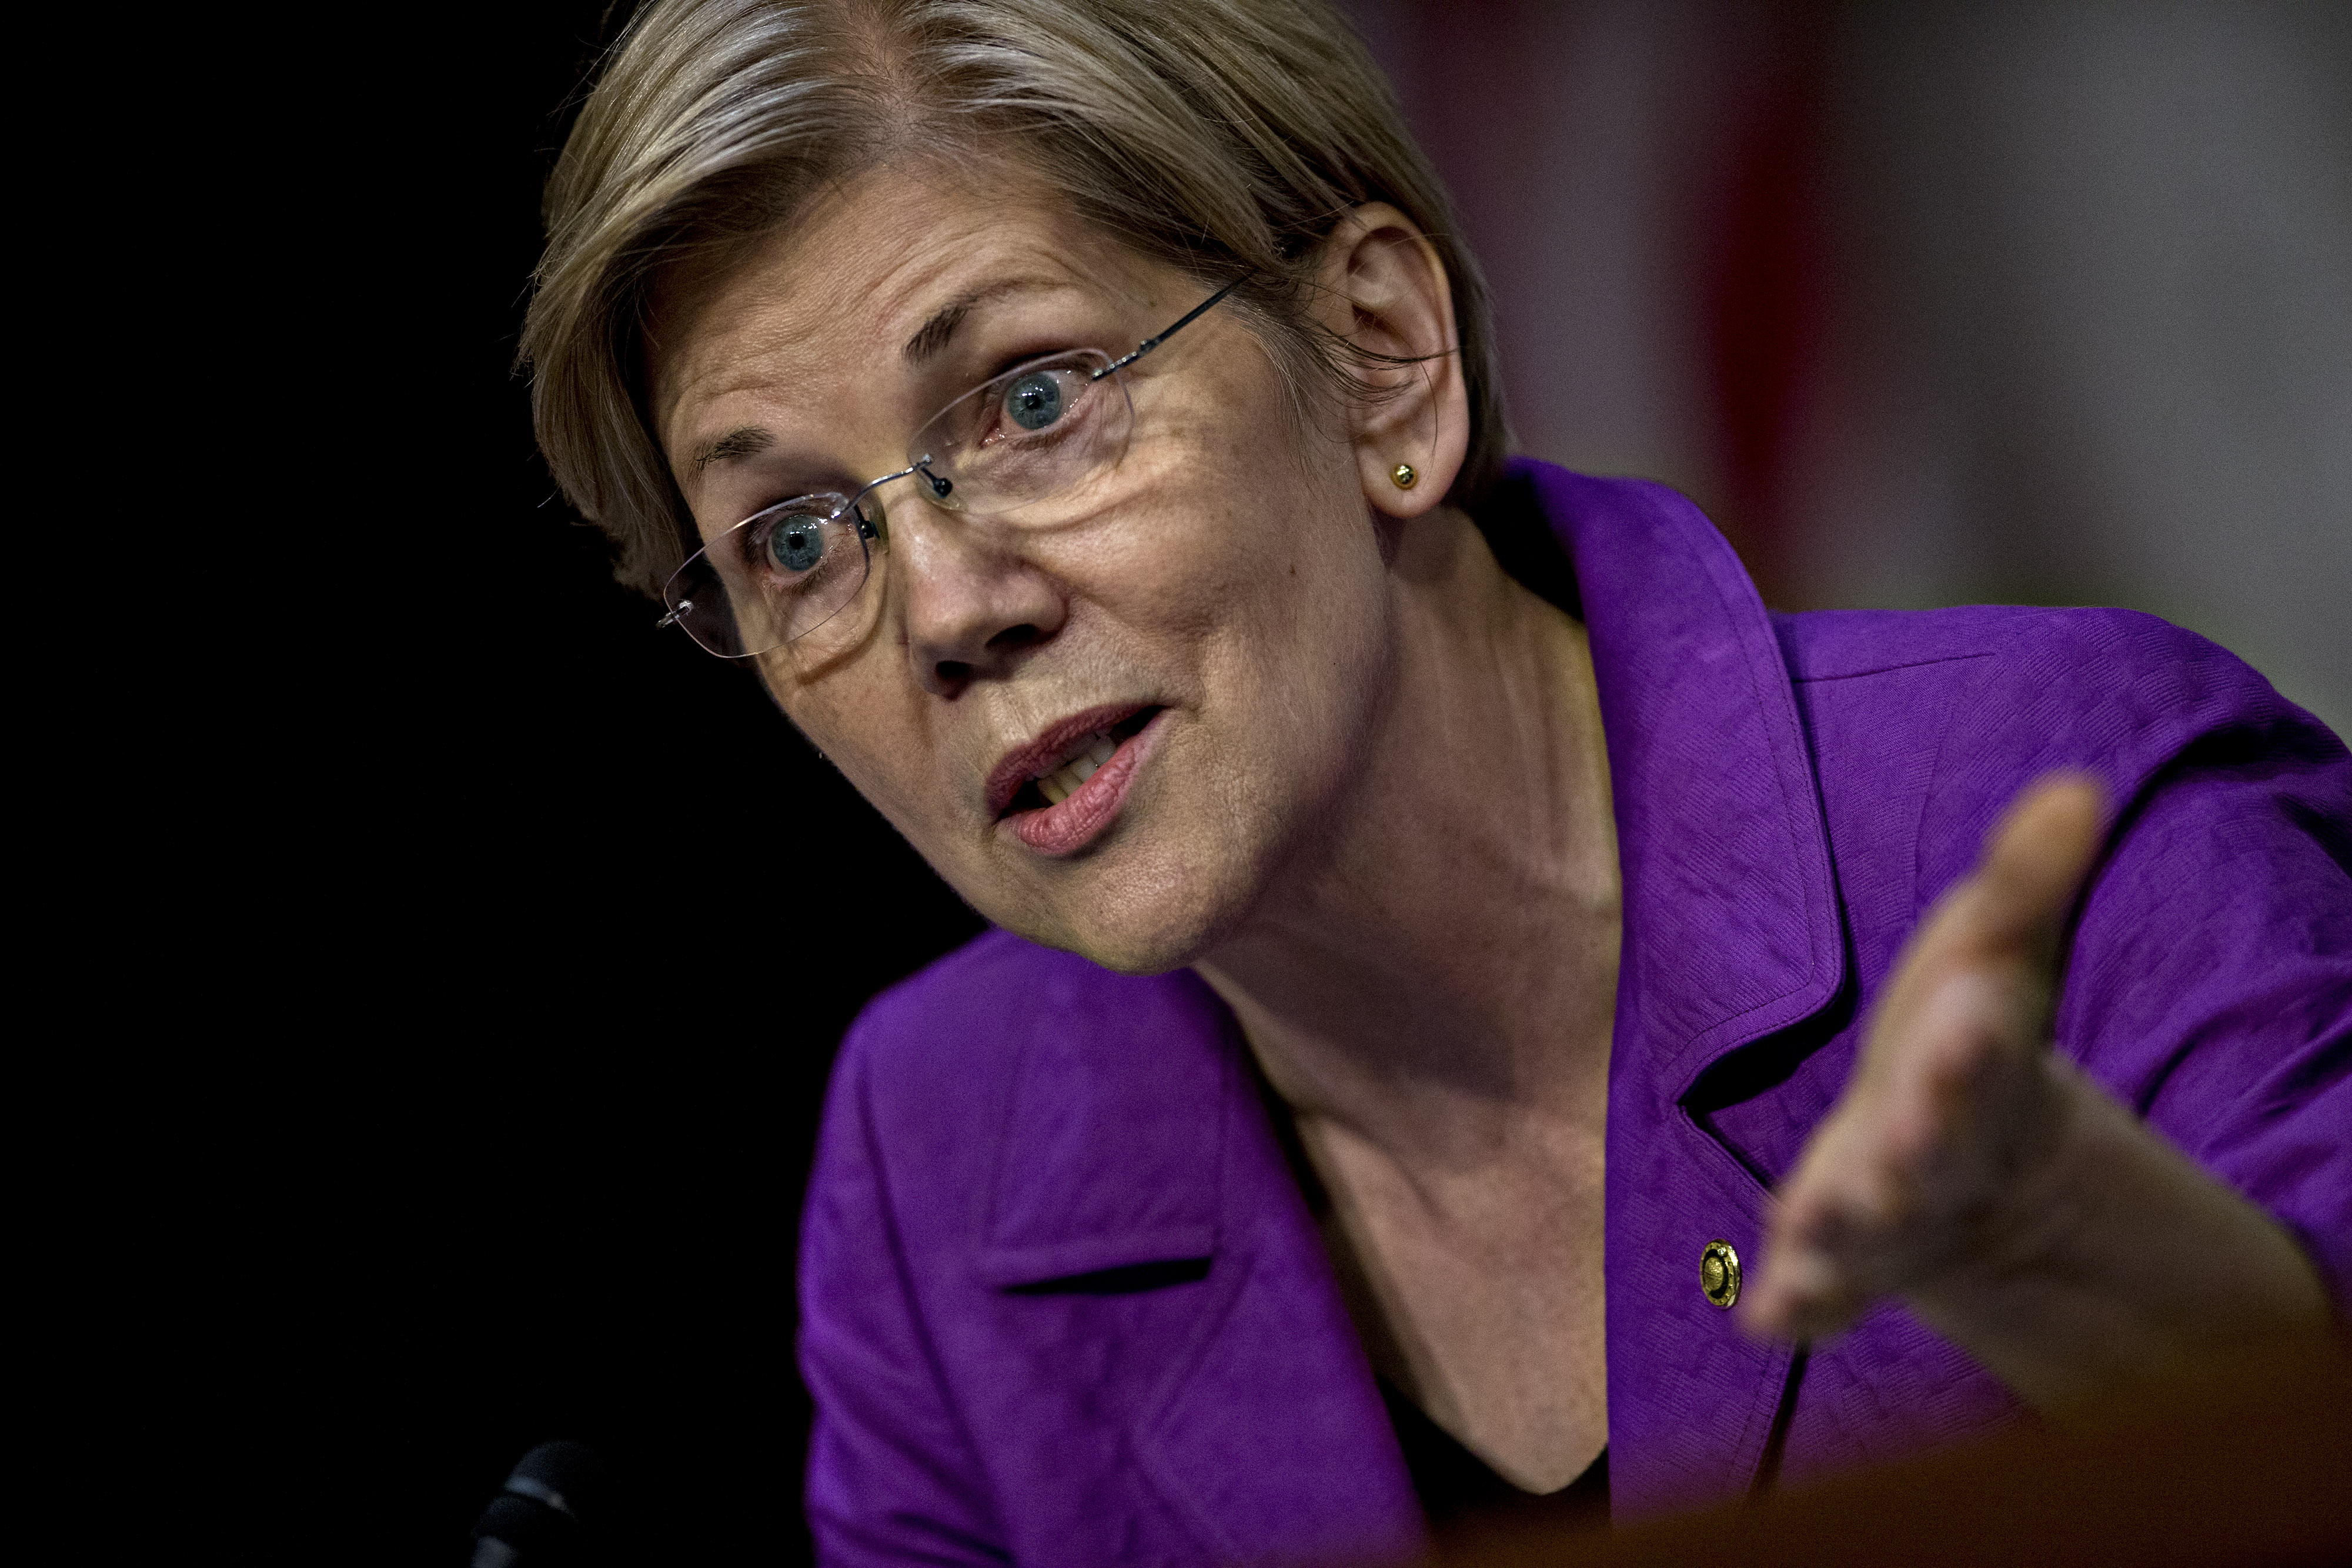 Senator Elizabeth Warren, a Democrat from Massachusetts, questions witnesses during a Senate Special Committee on Aging hearing on Valeant Pharmaceuticals in Washington on April 27.